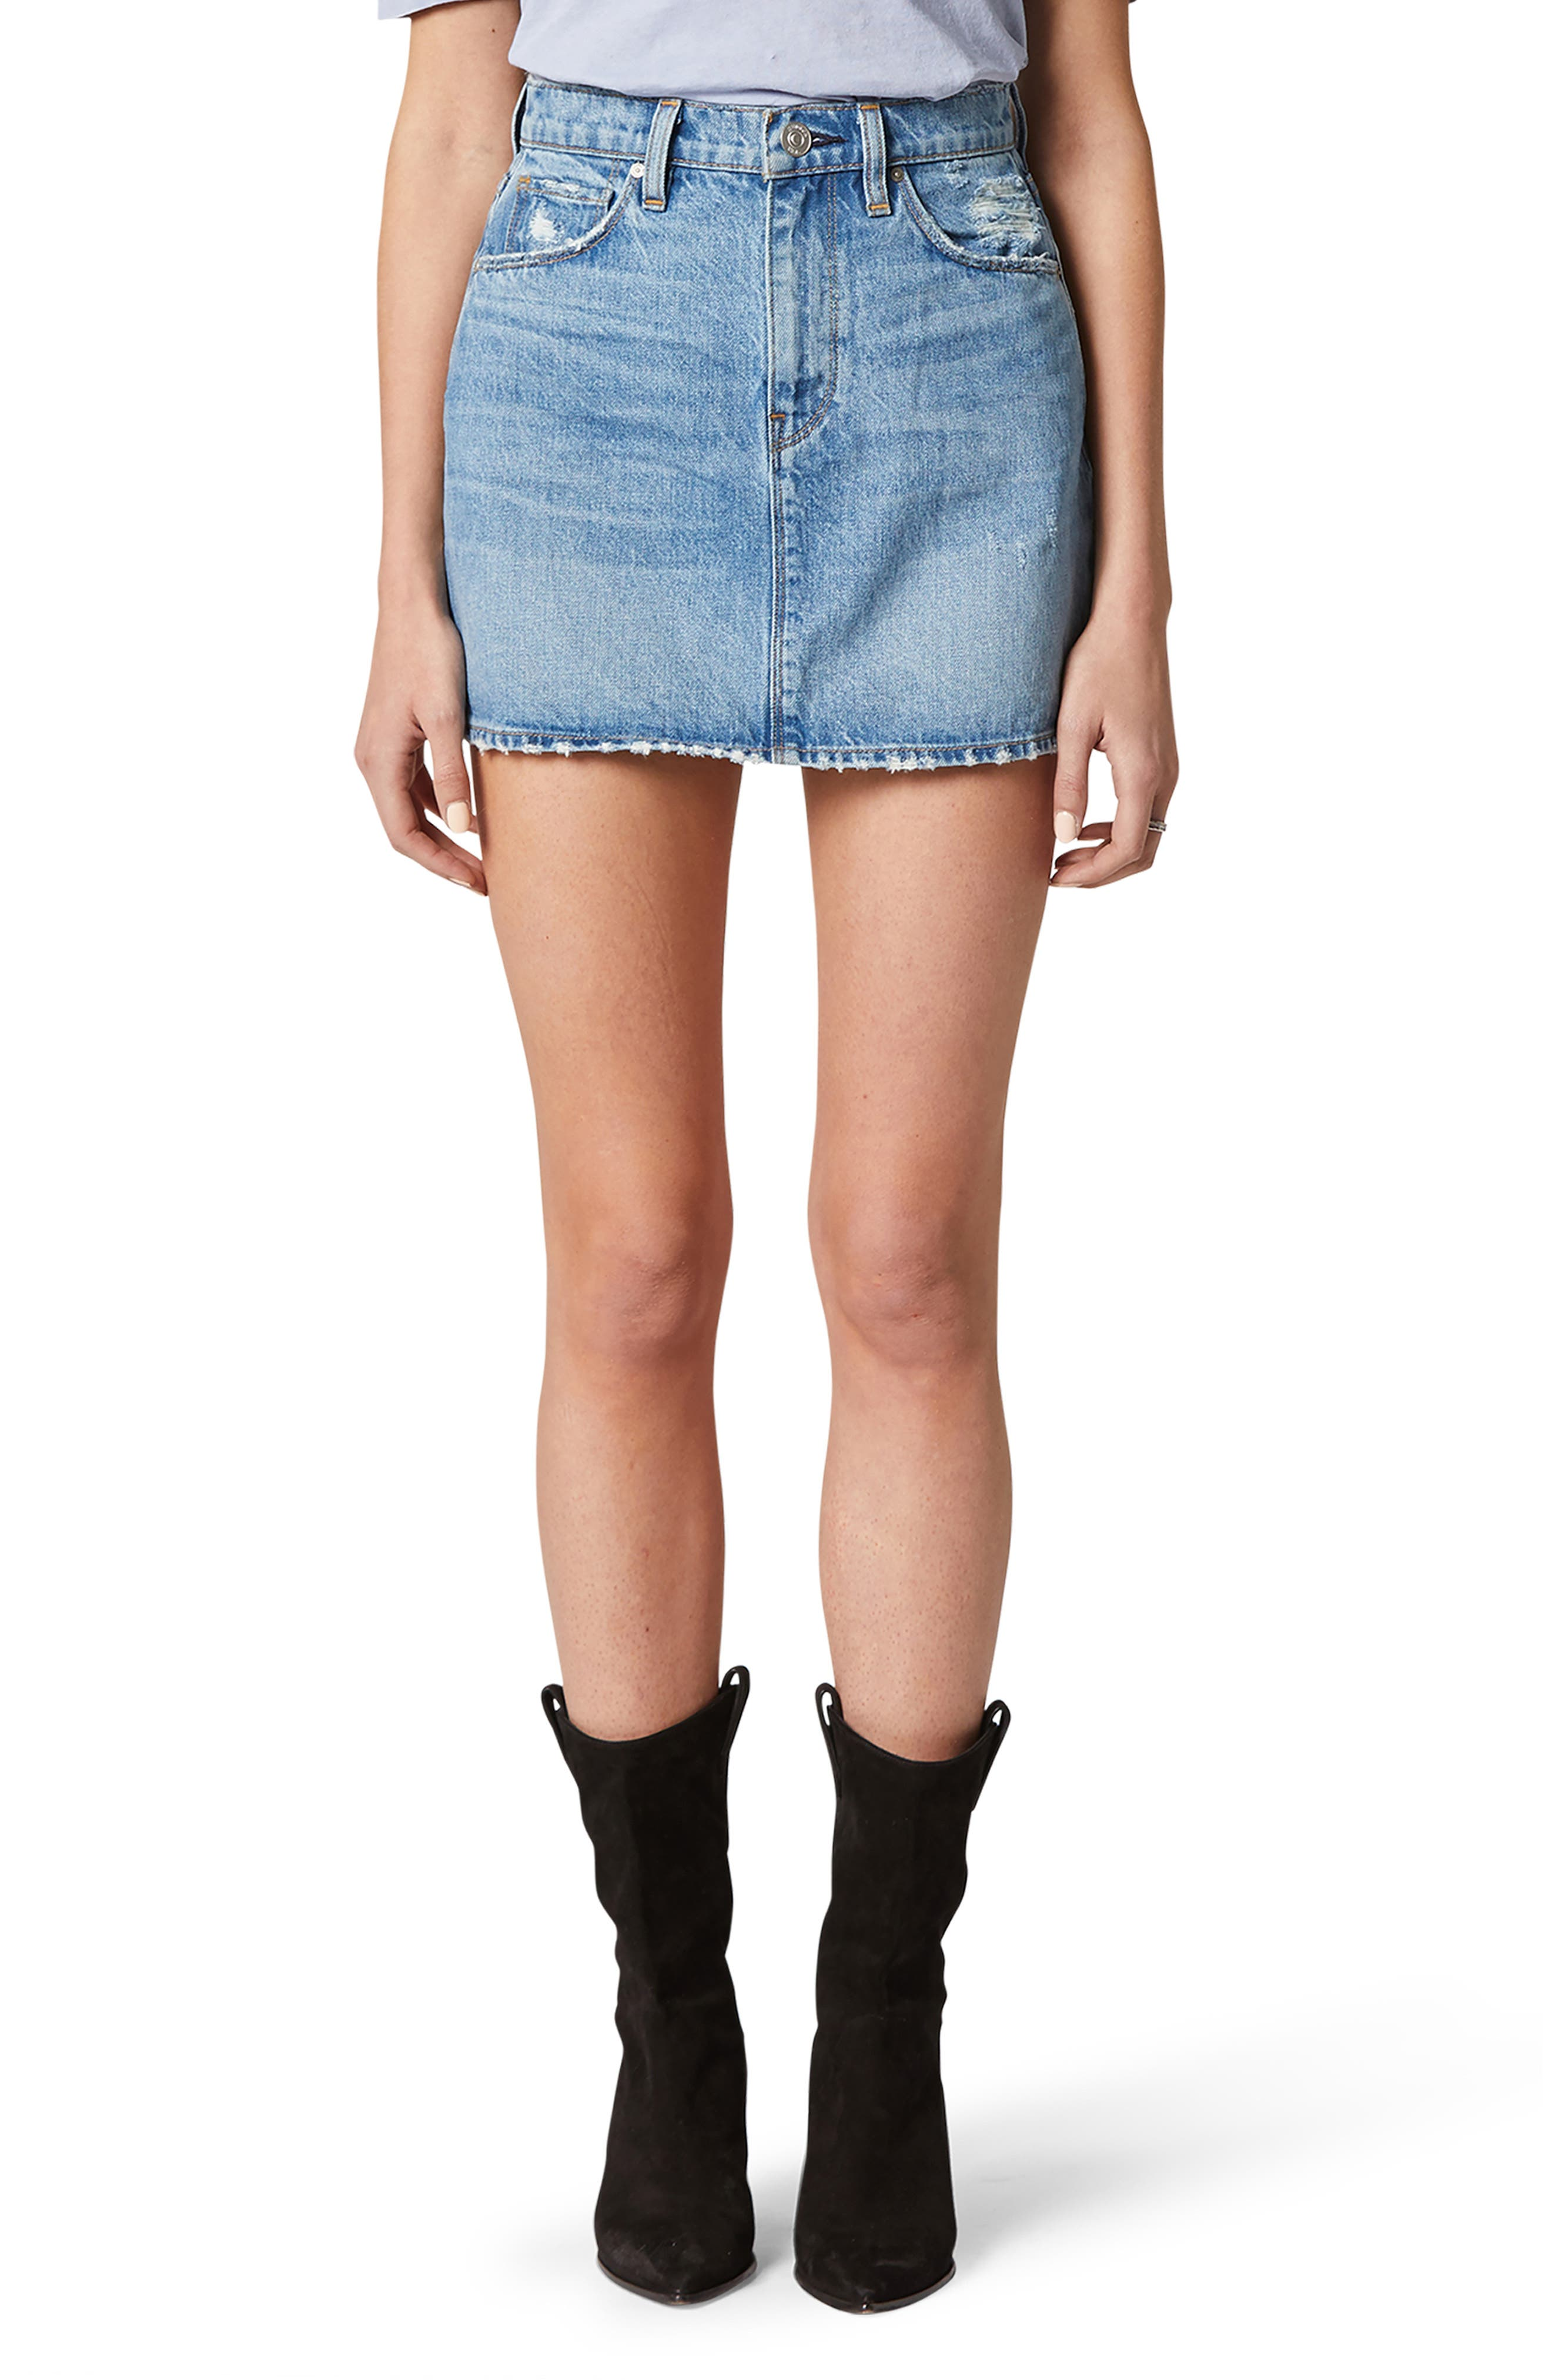 Every closet craves this casual-cool mini styled in a faded, distressed wash with a stem-showing hem. Style Name: Hudson Jeans The Viper Denim Miniskirt. Style Number: 6094491. Available in stores.